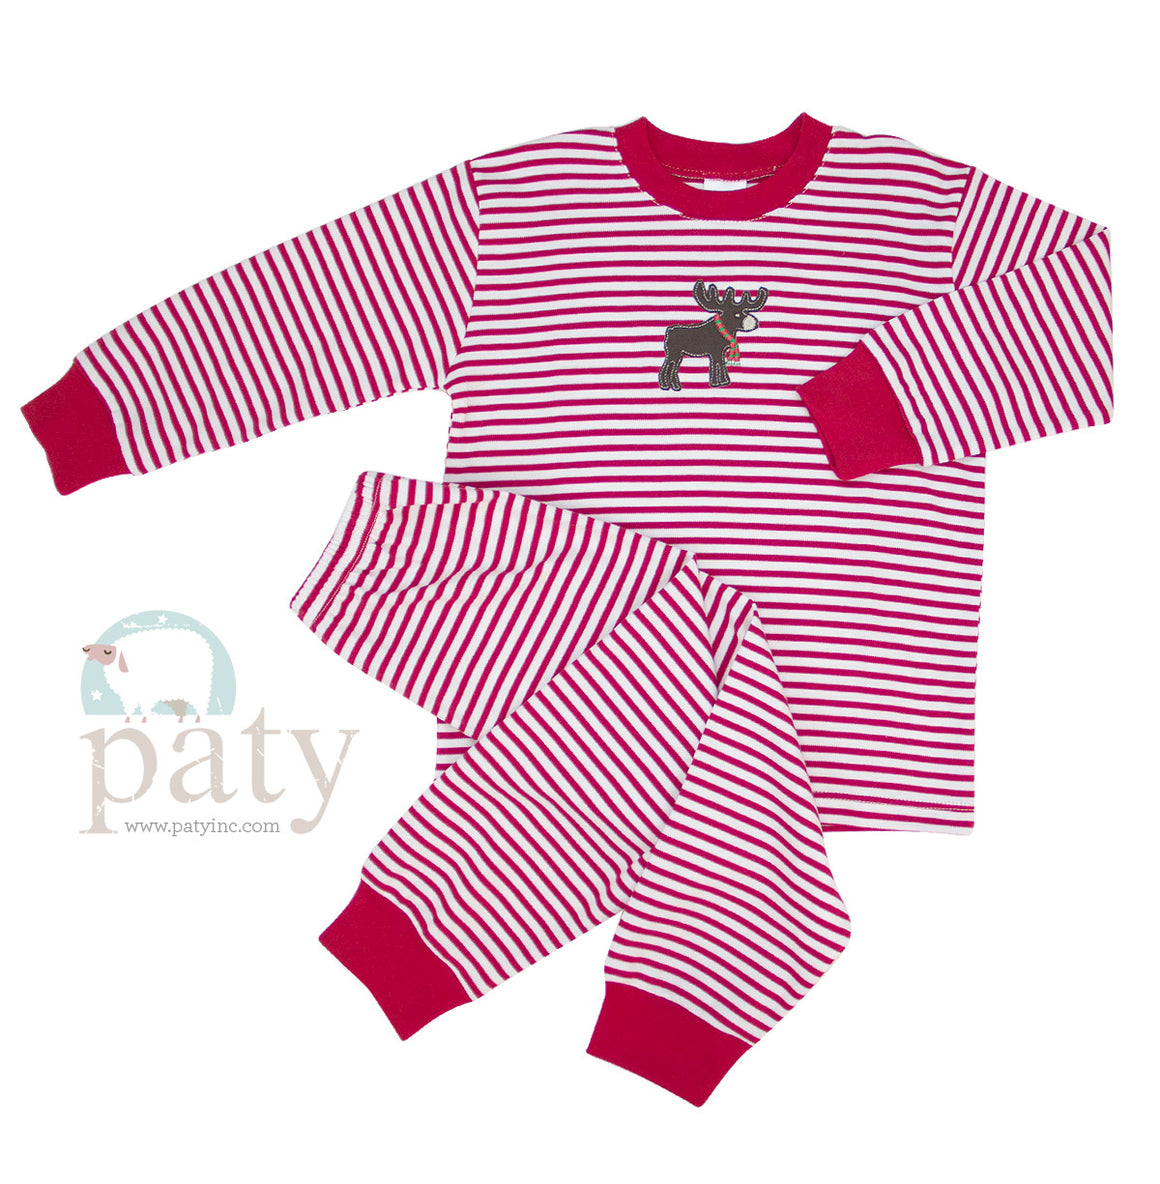 Paty Stripe PJs with Moose Embroidery